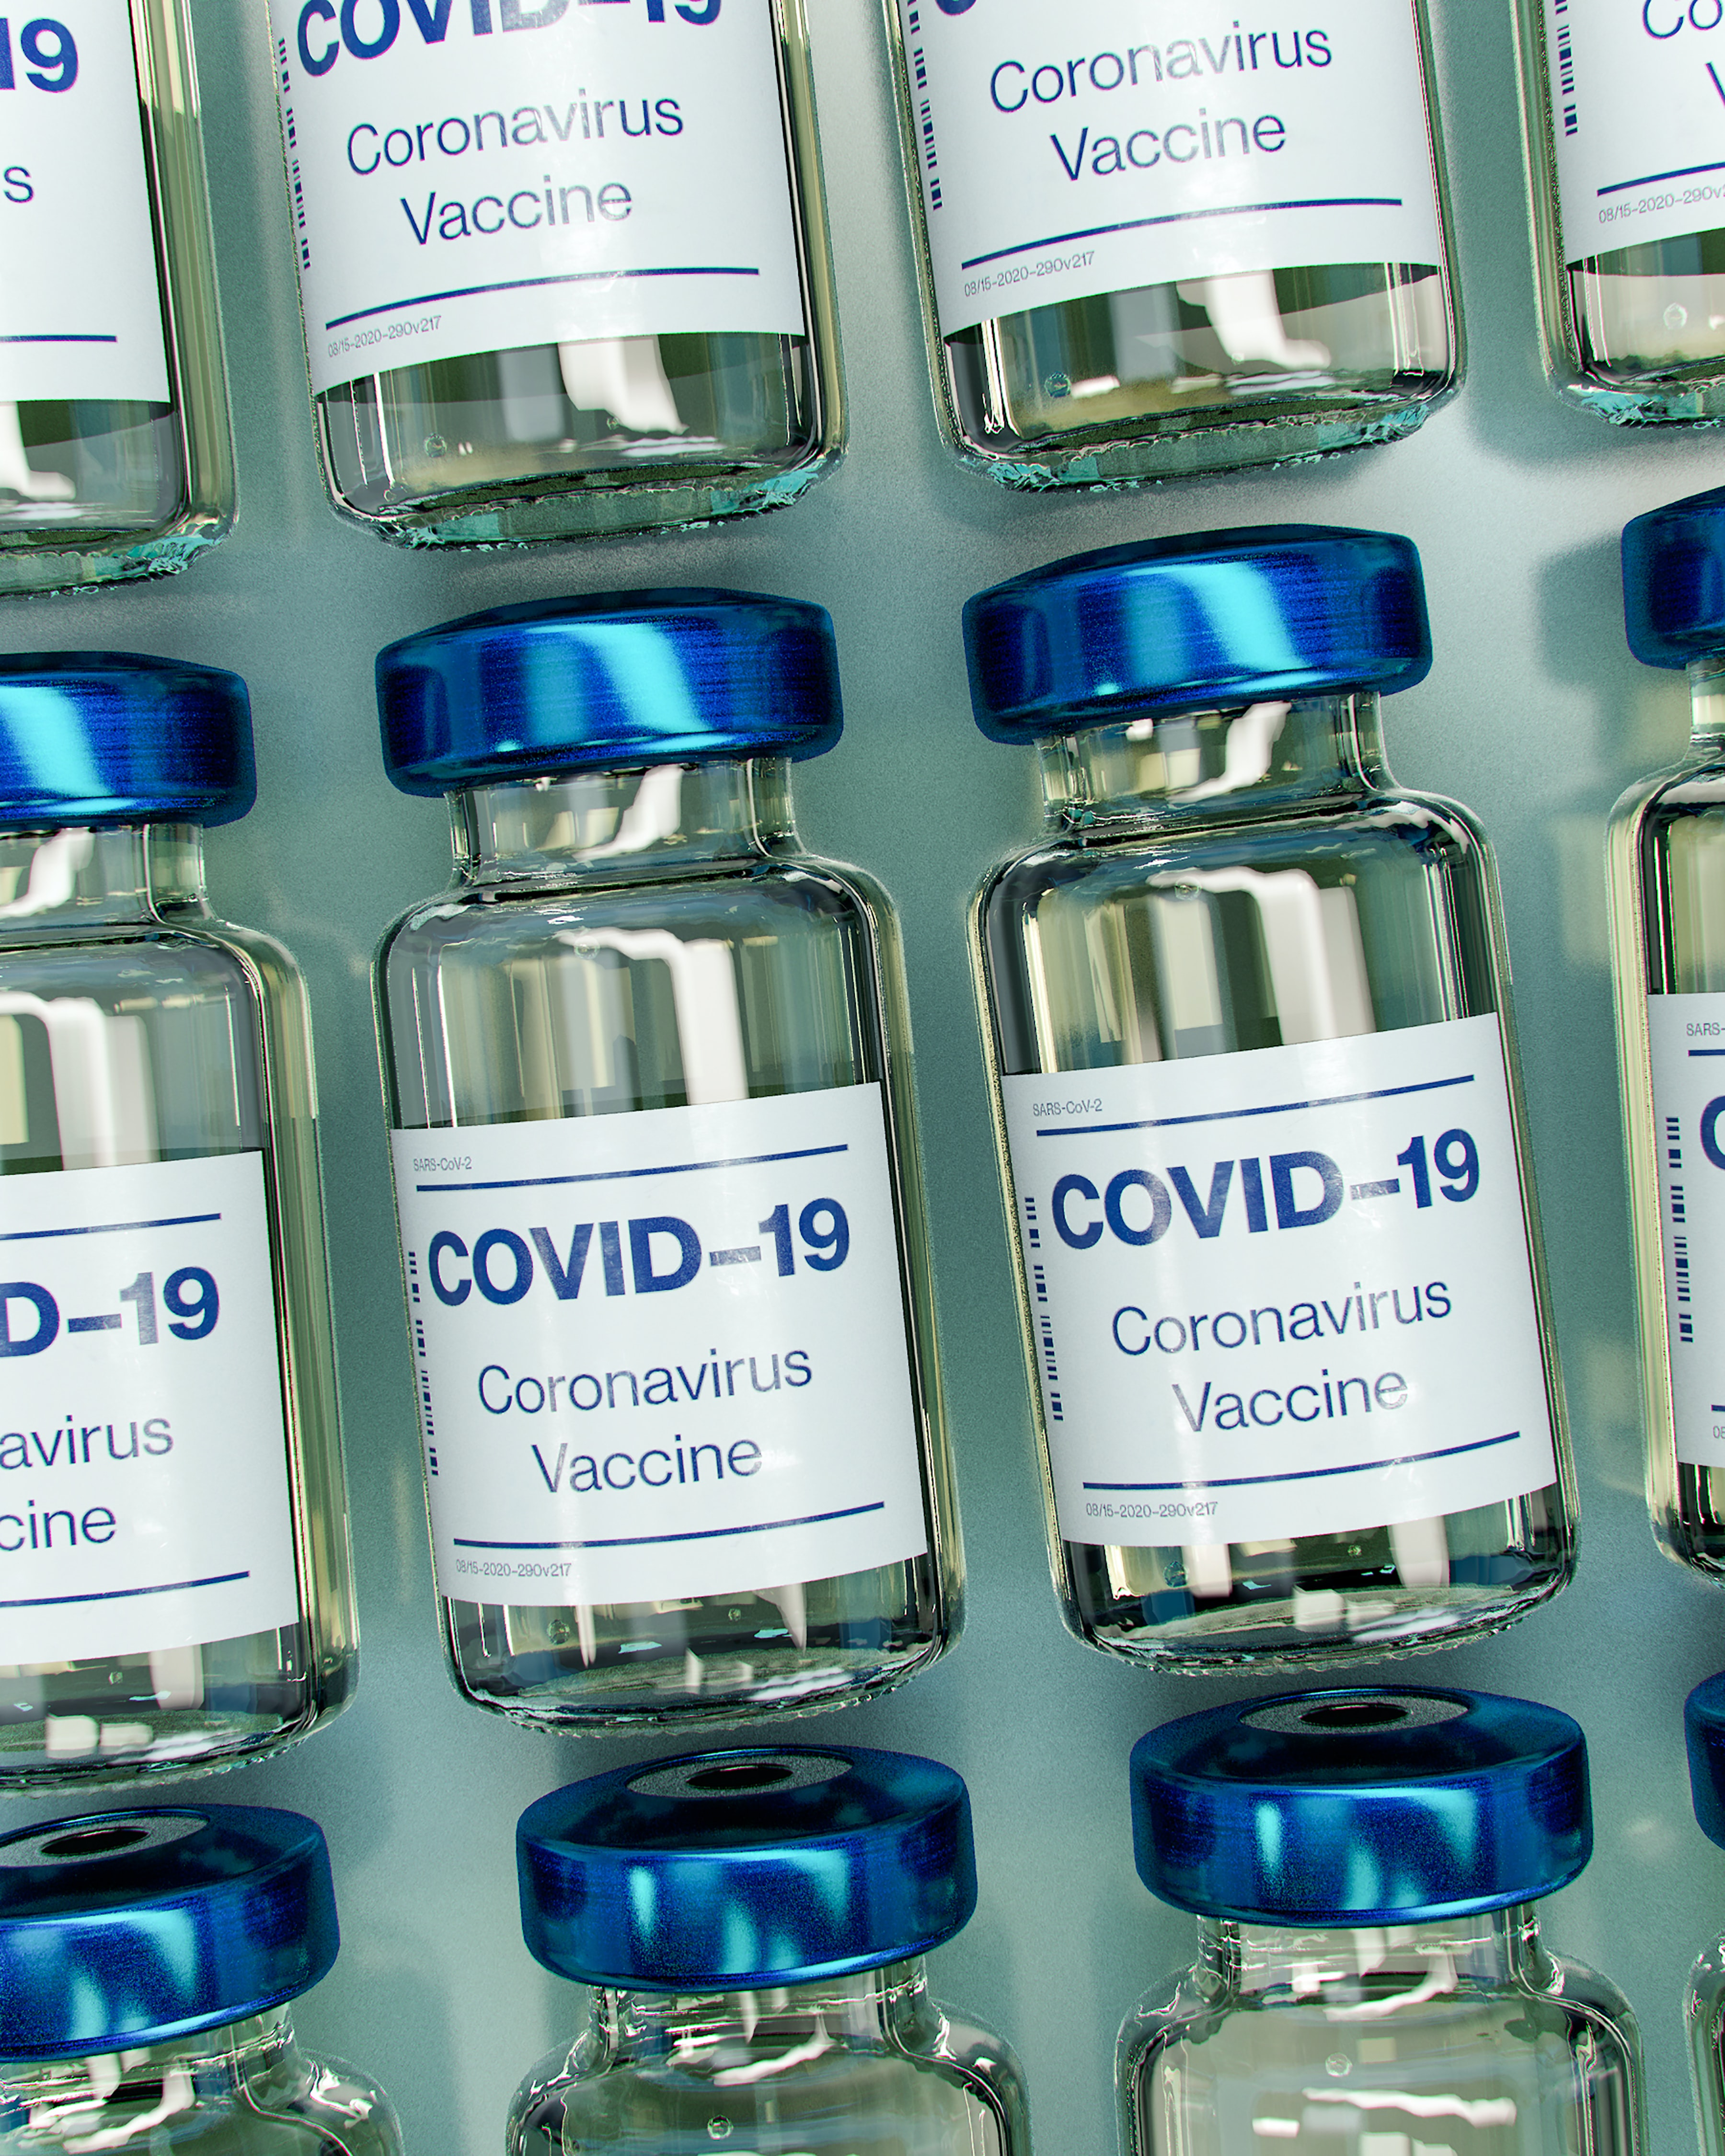 91 Year Old Receives 2 COVID Vaccines in One Day